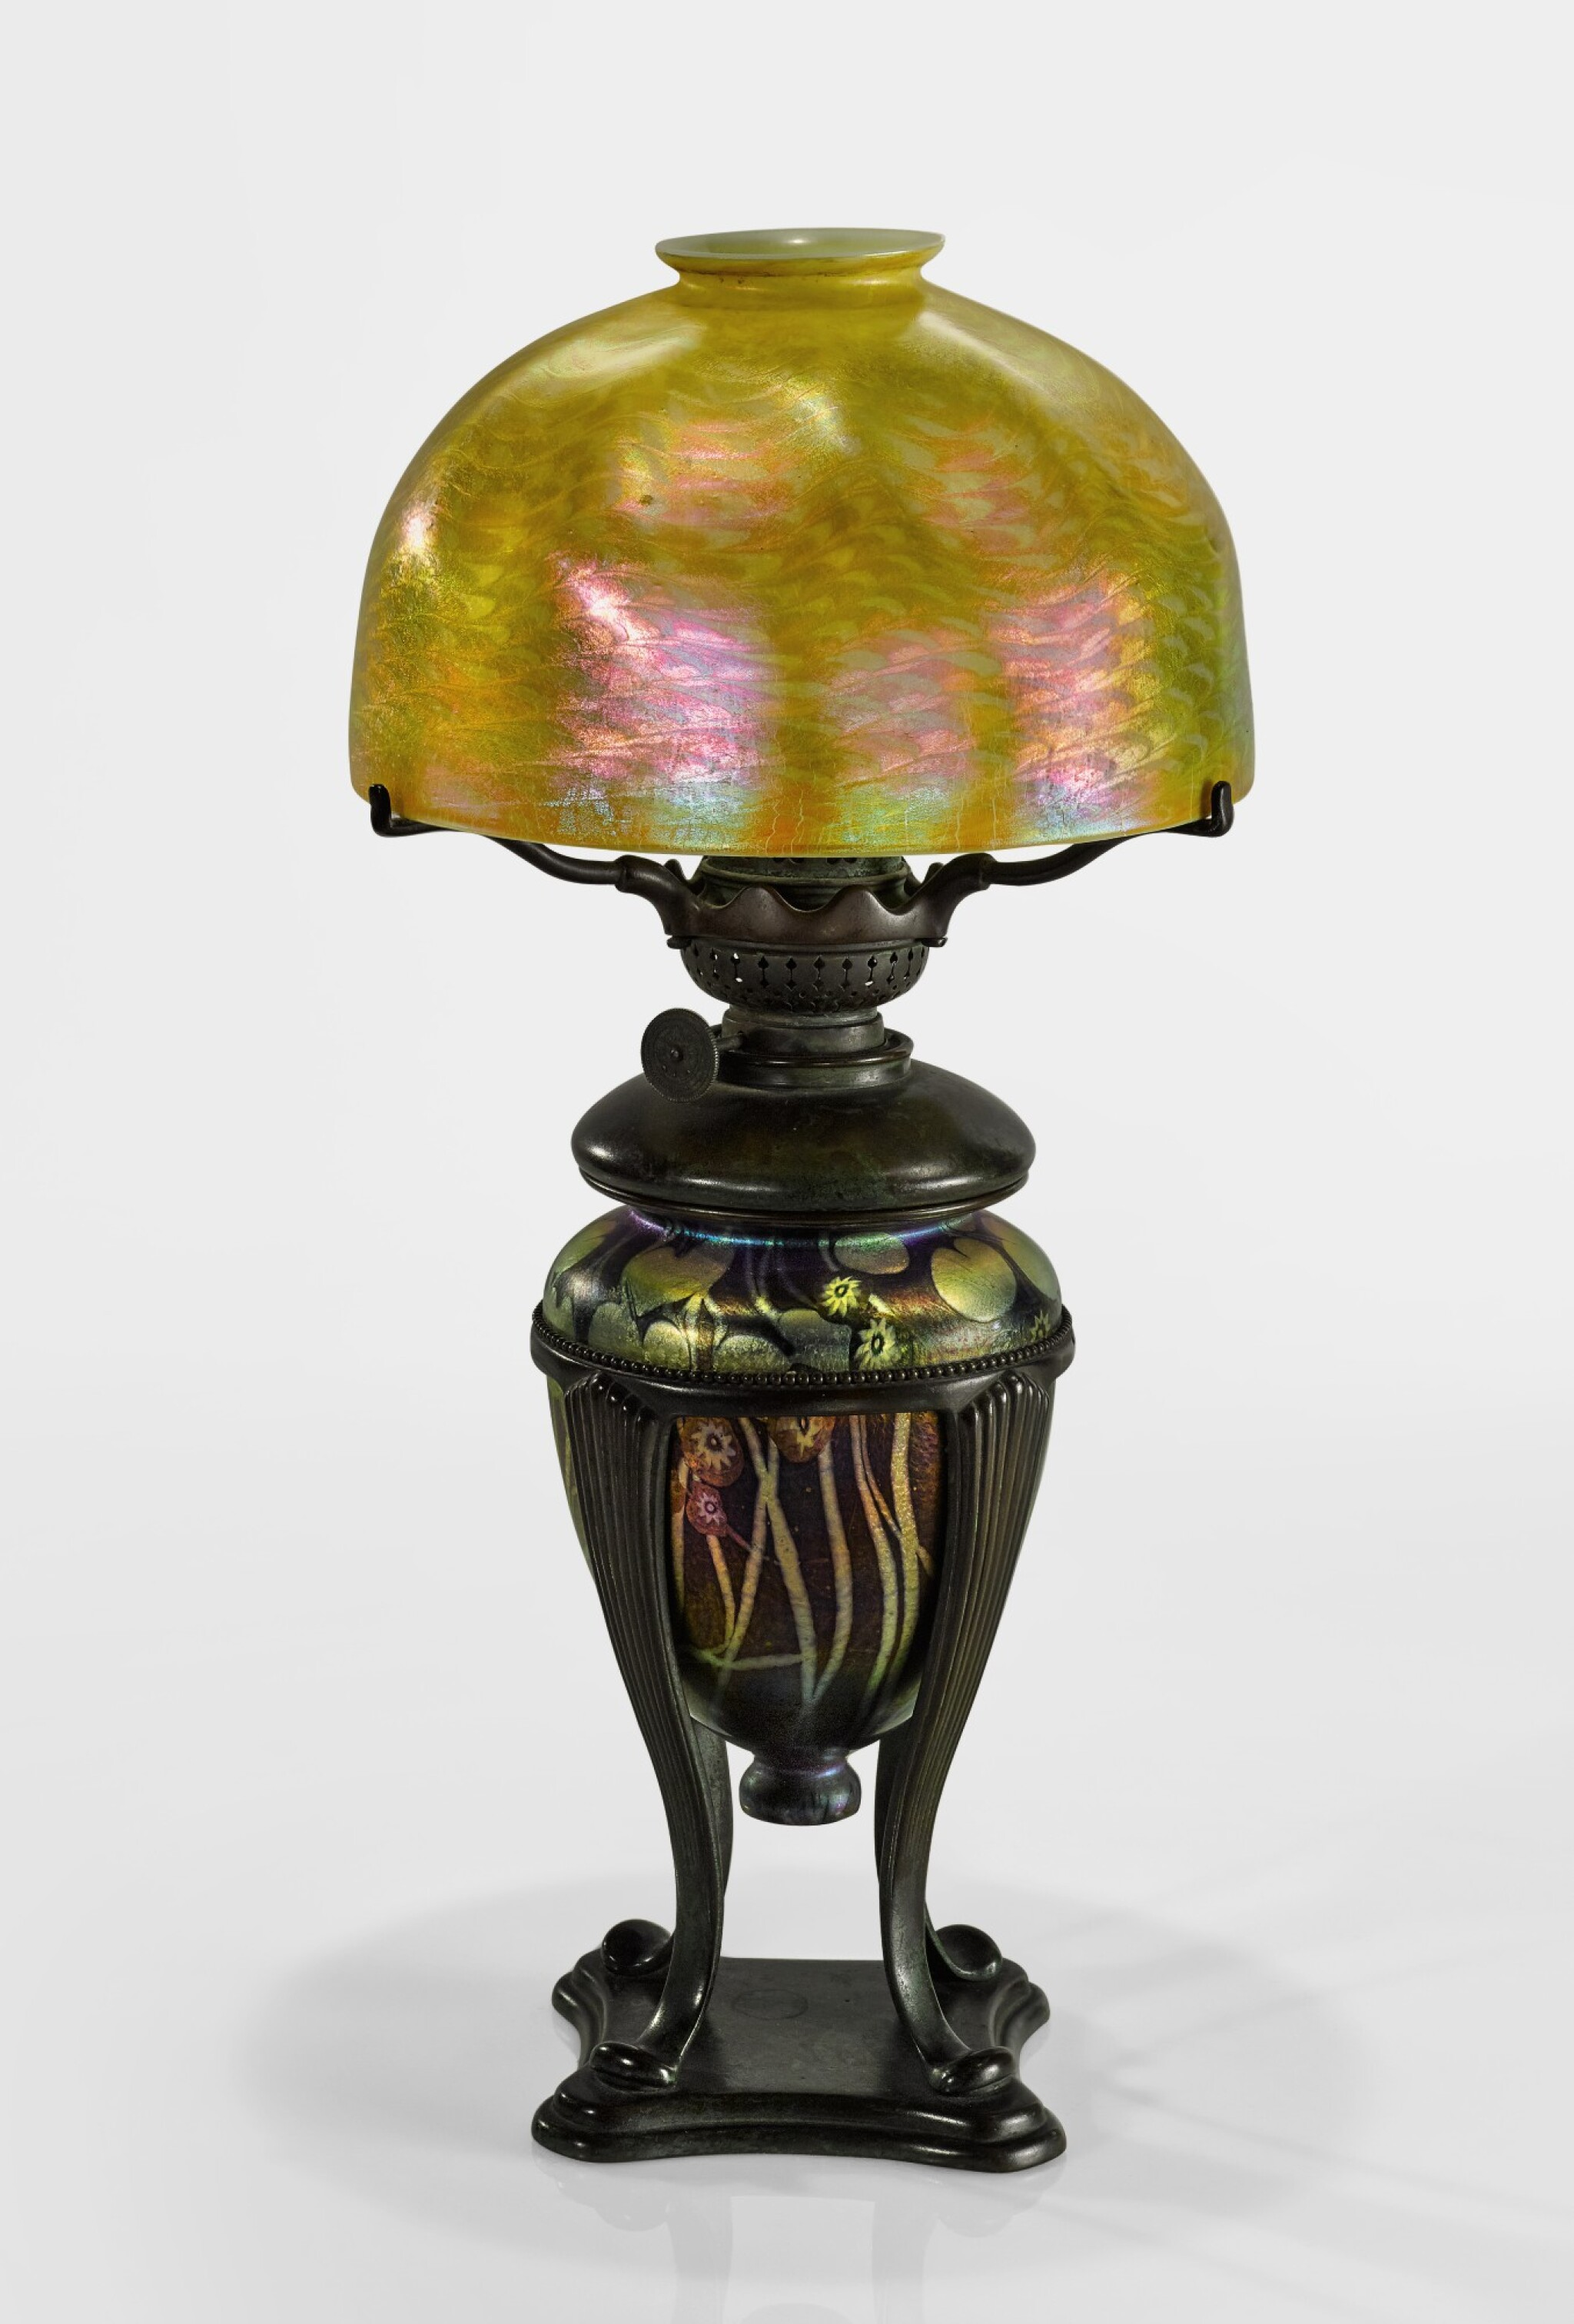 Tiffany Studios Millefiori Kerosene Table Lamp Dreaming In Glass Masterworks By Tiffany Studios 20th Century Design Sotheby S